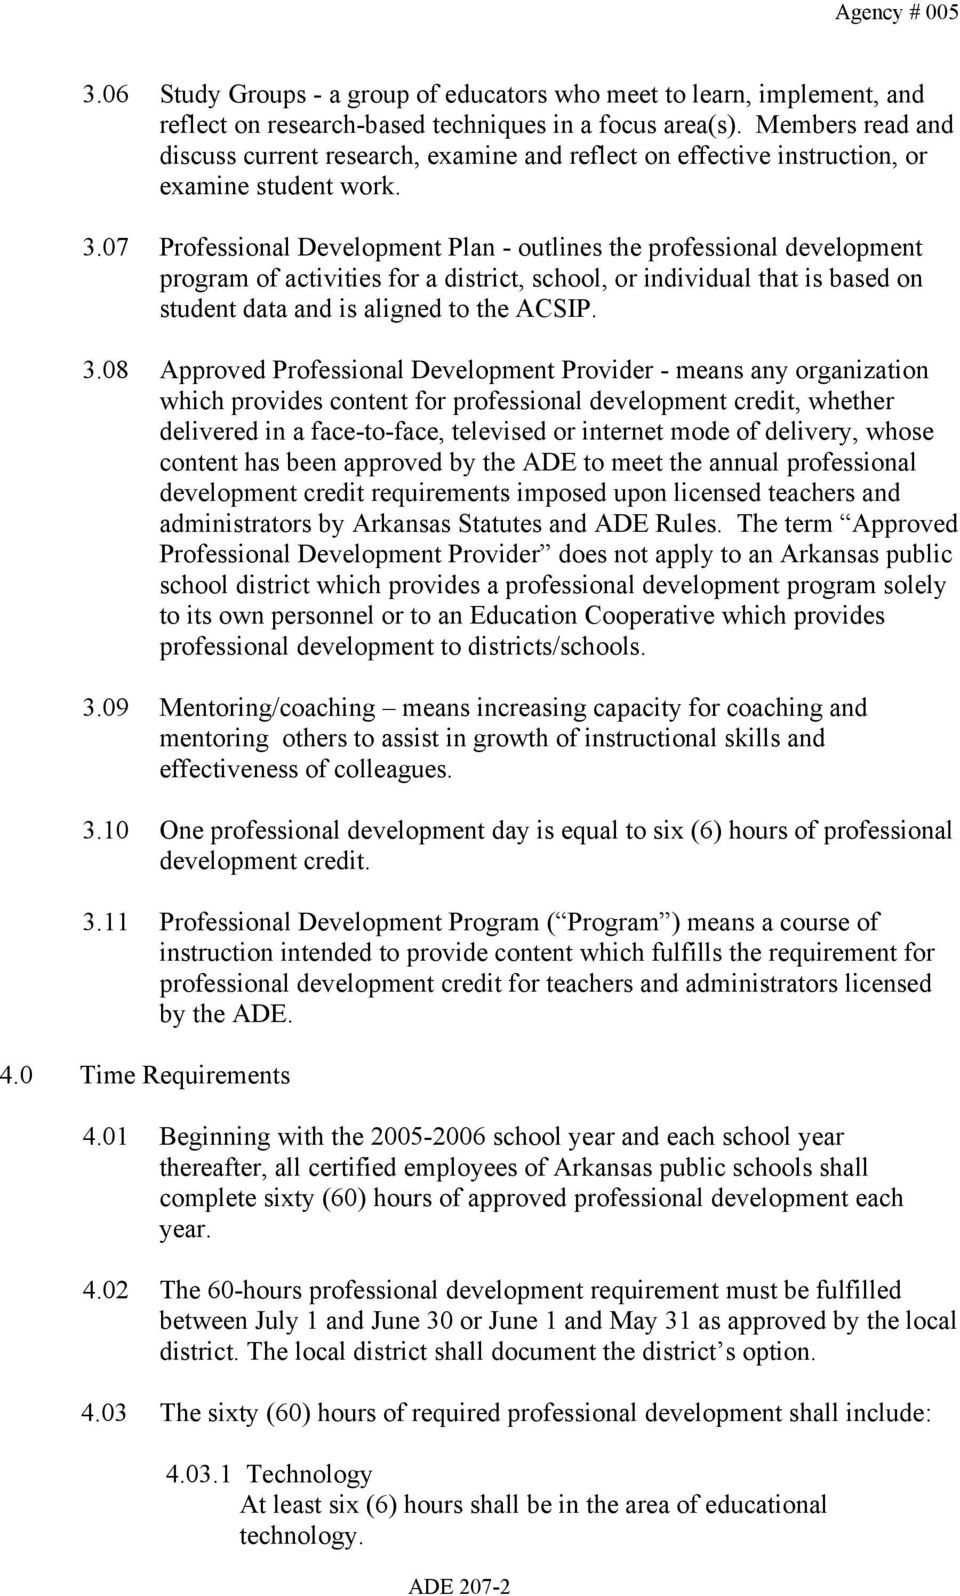 07 Professional Development Plan - outlines the professional development program of activities for a district, school, or individual that is based on student data and is aligned to the ACSIP. 3.